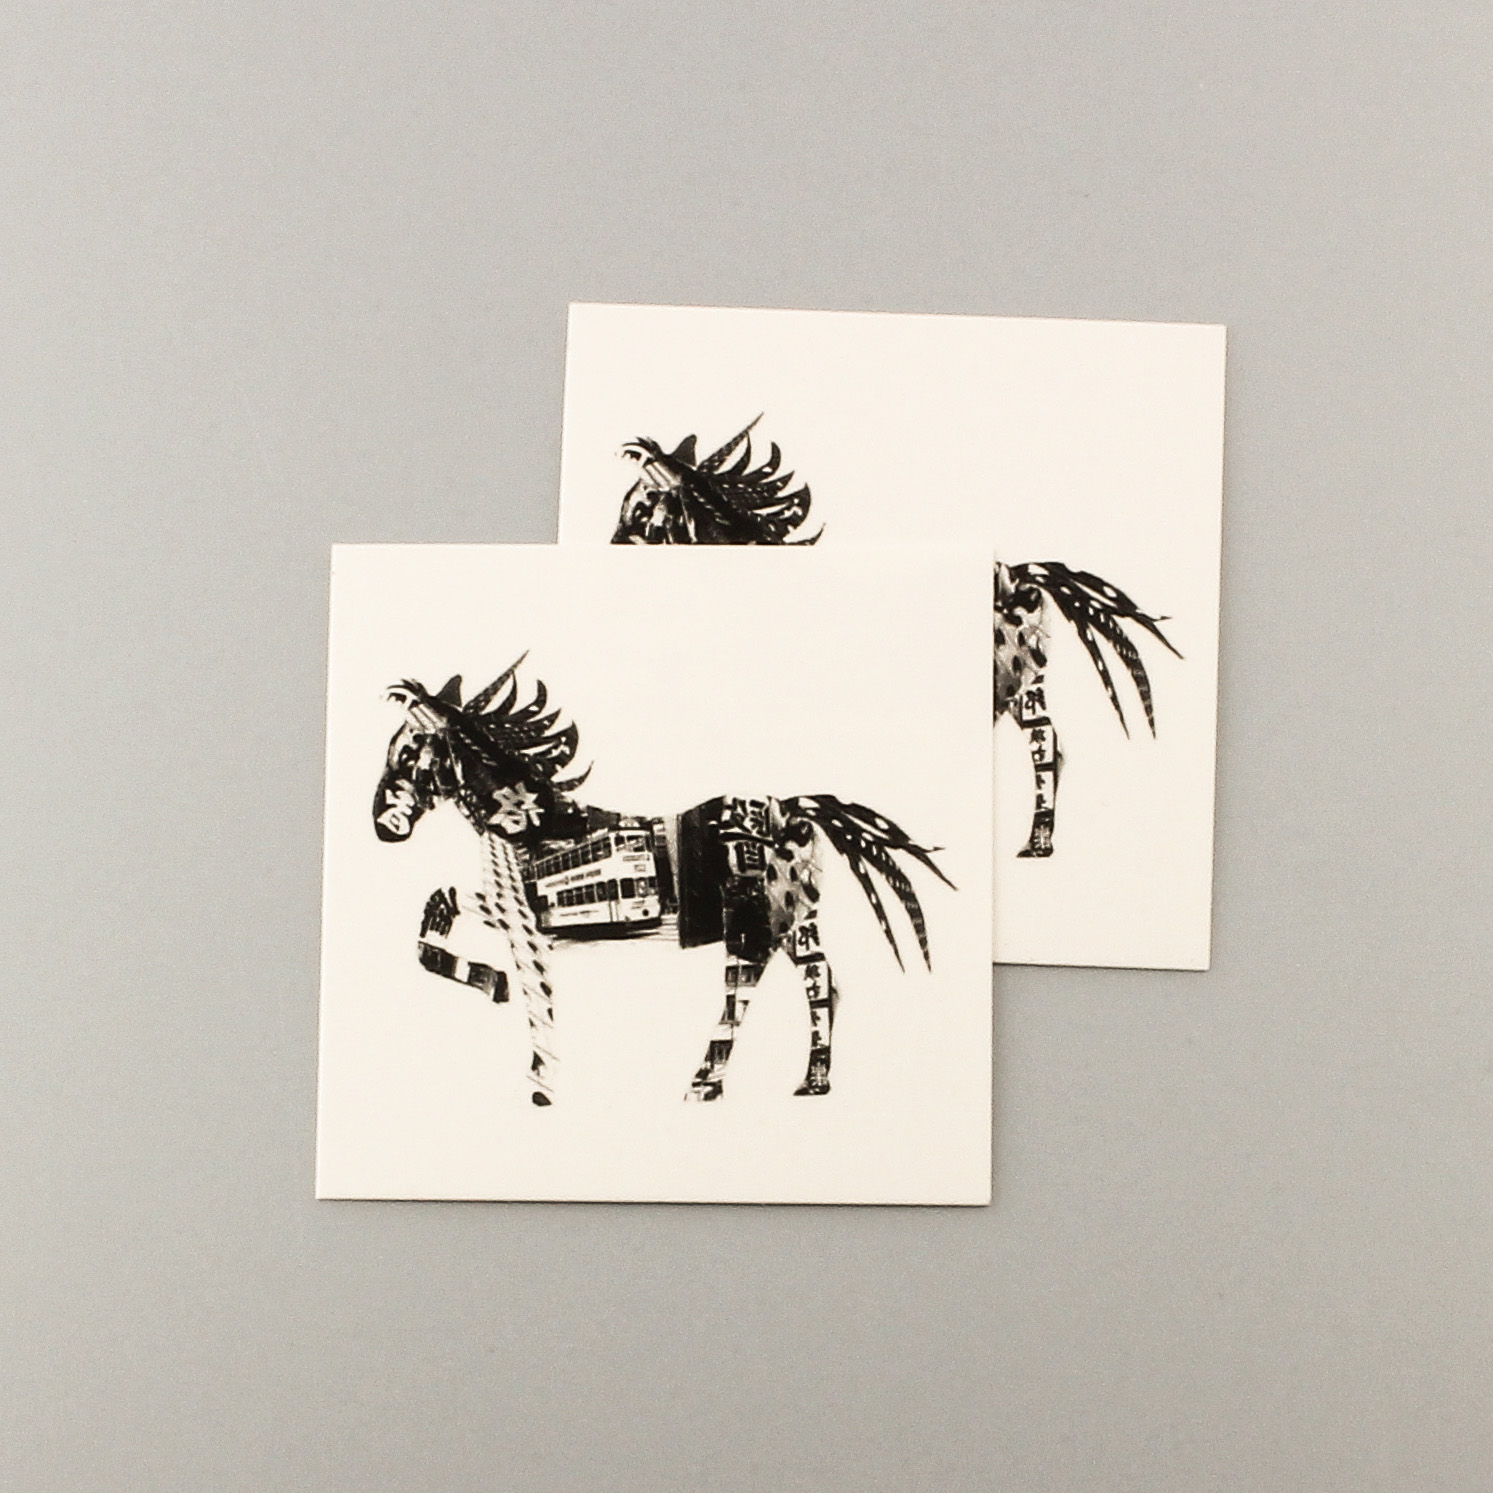 Chinese Zodiac Horse Tattoo Small Set Sold By Bodinker Tattoo On Storenvy